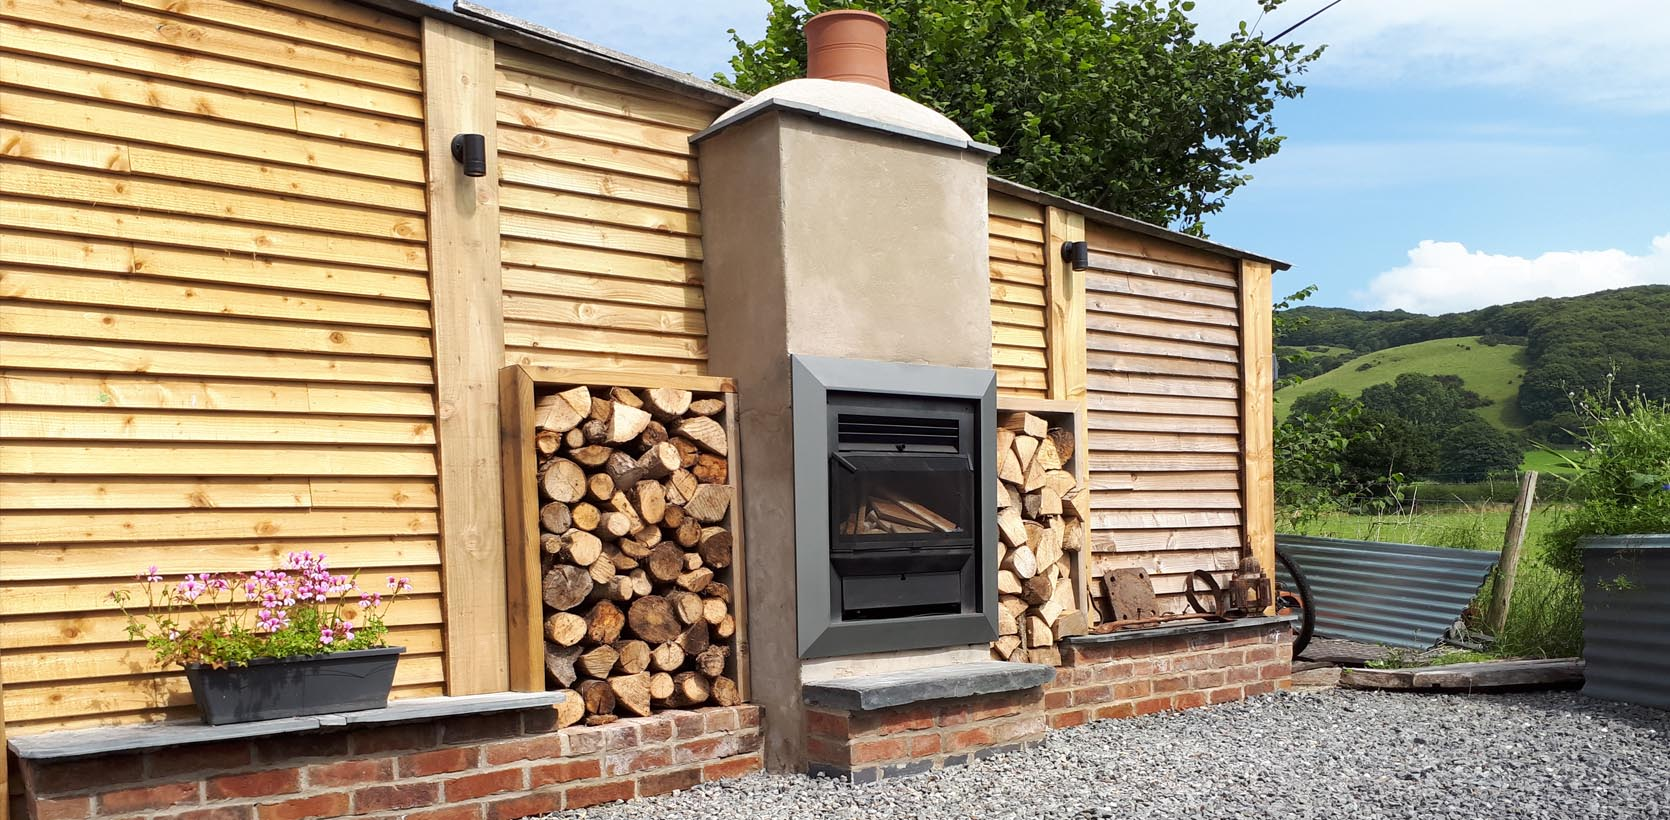 Outdoor living - Aber Stoves & Flues Ltd. on Outdoor Living Ltd  id=30603